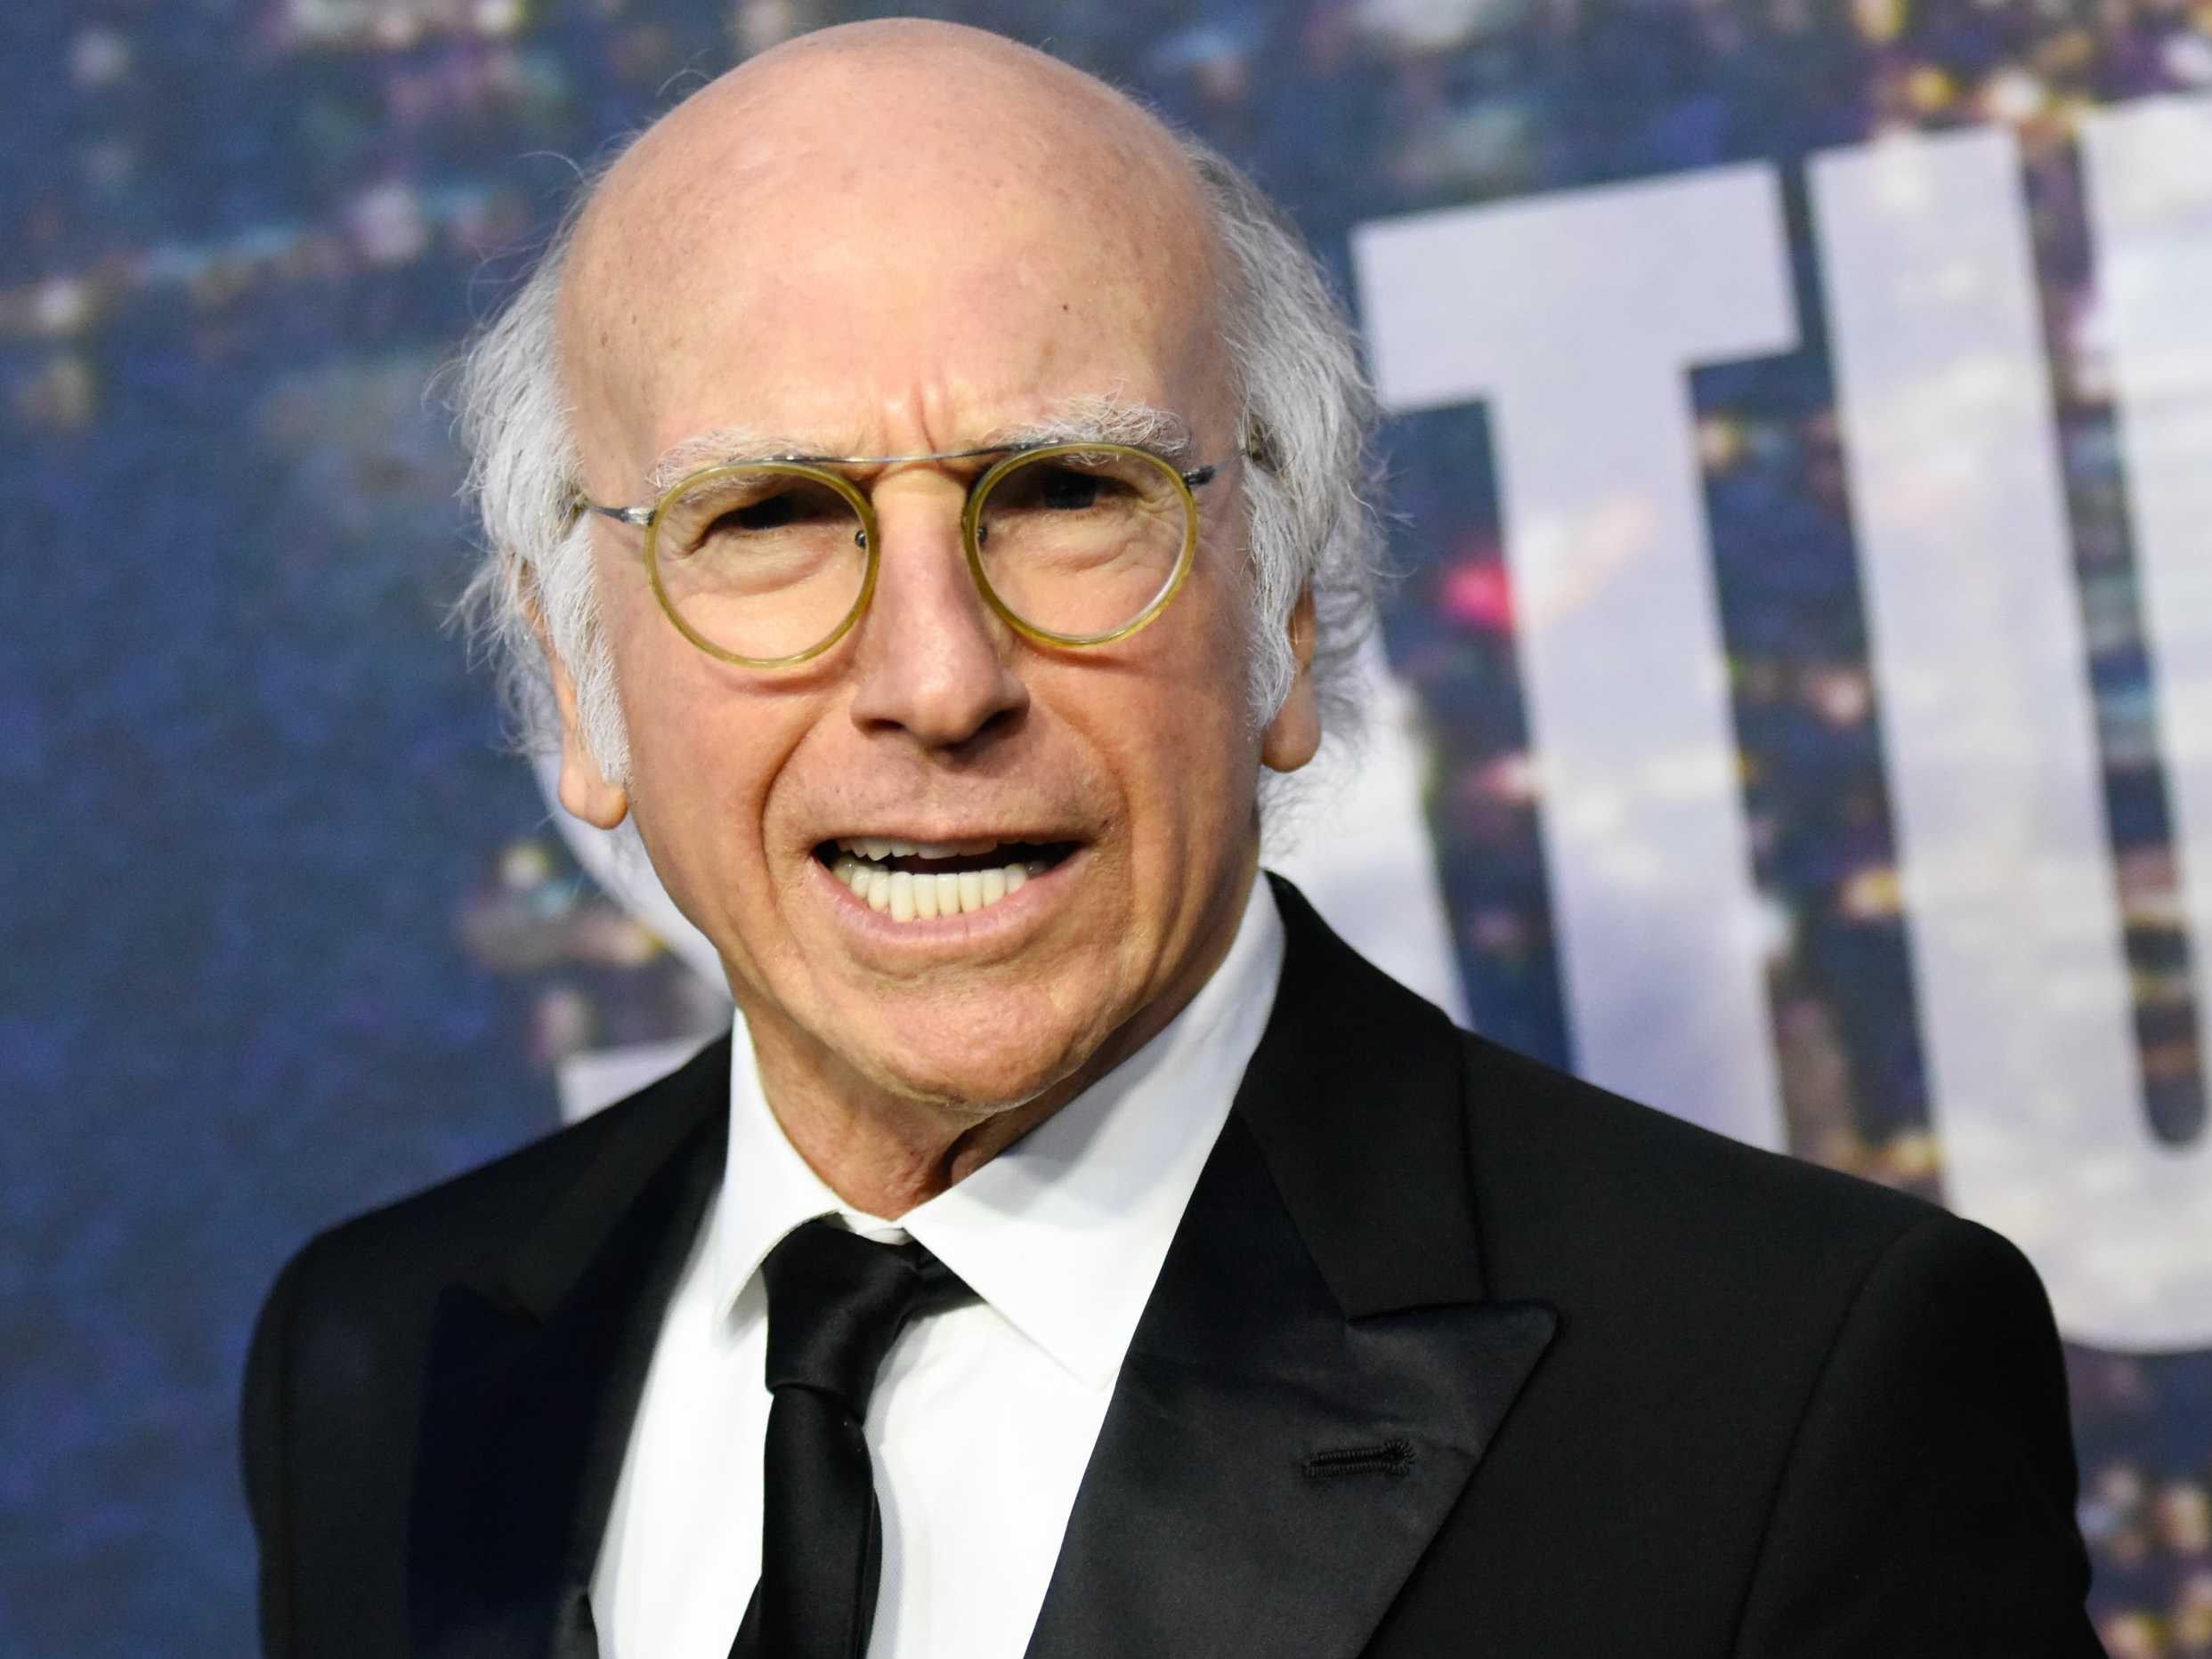 Larry David Wallpapers